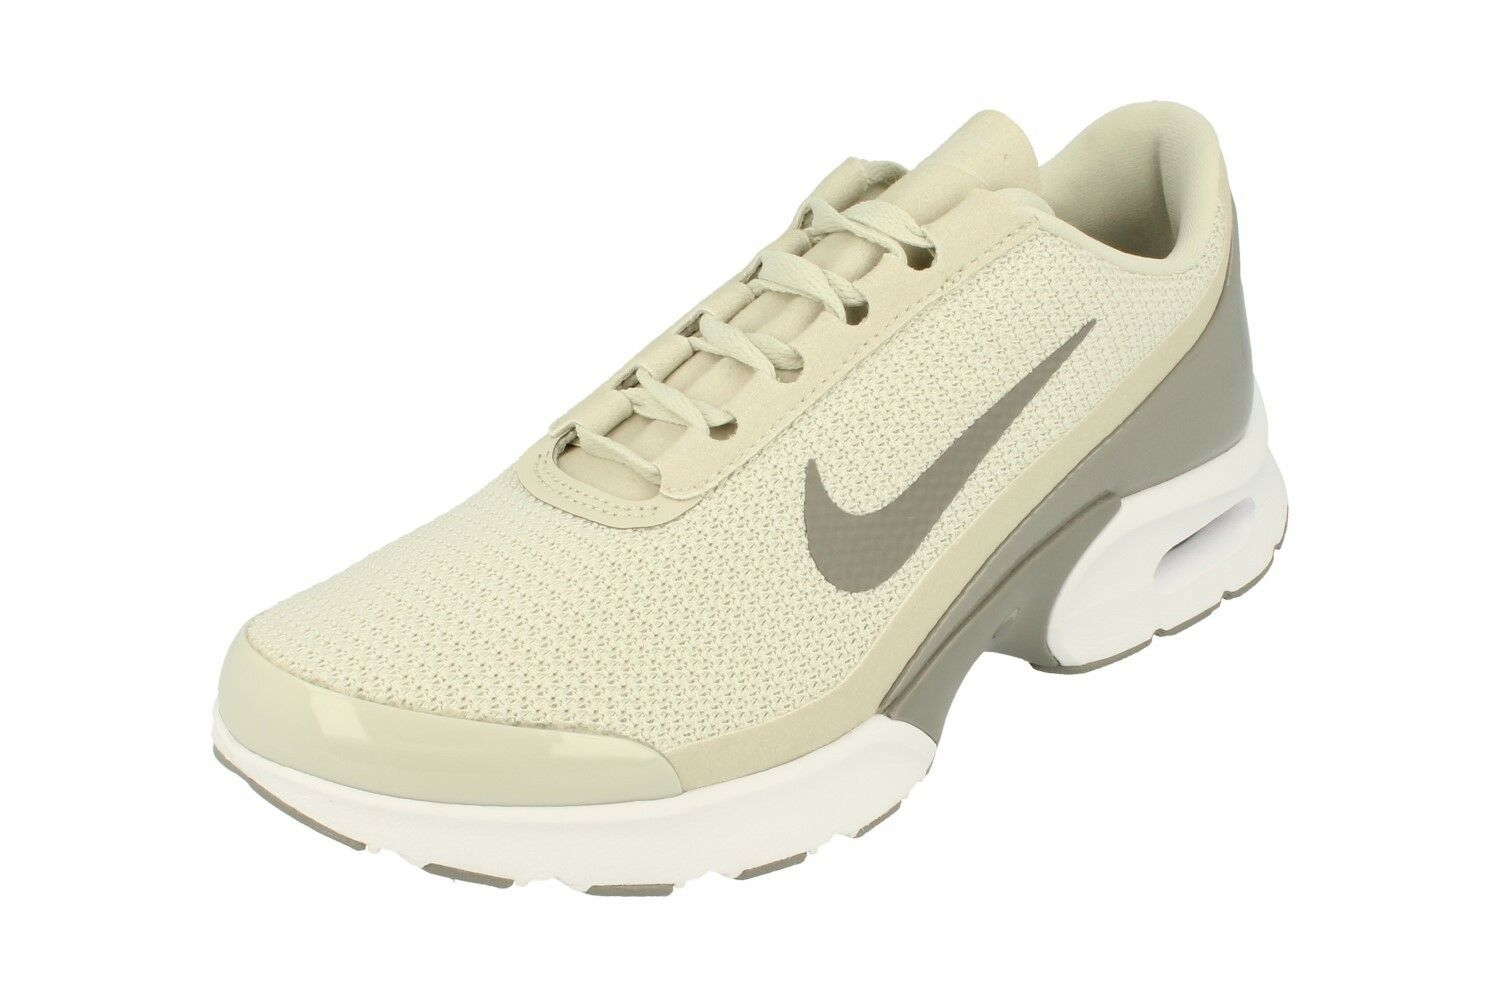 Nike Damenschuhe Air Max Jewel Schuhes Running Trainers 896194 Sneakers Schuhes Jewel 002 d0c74d